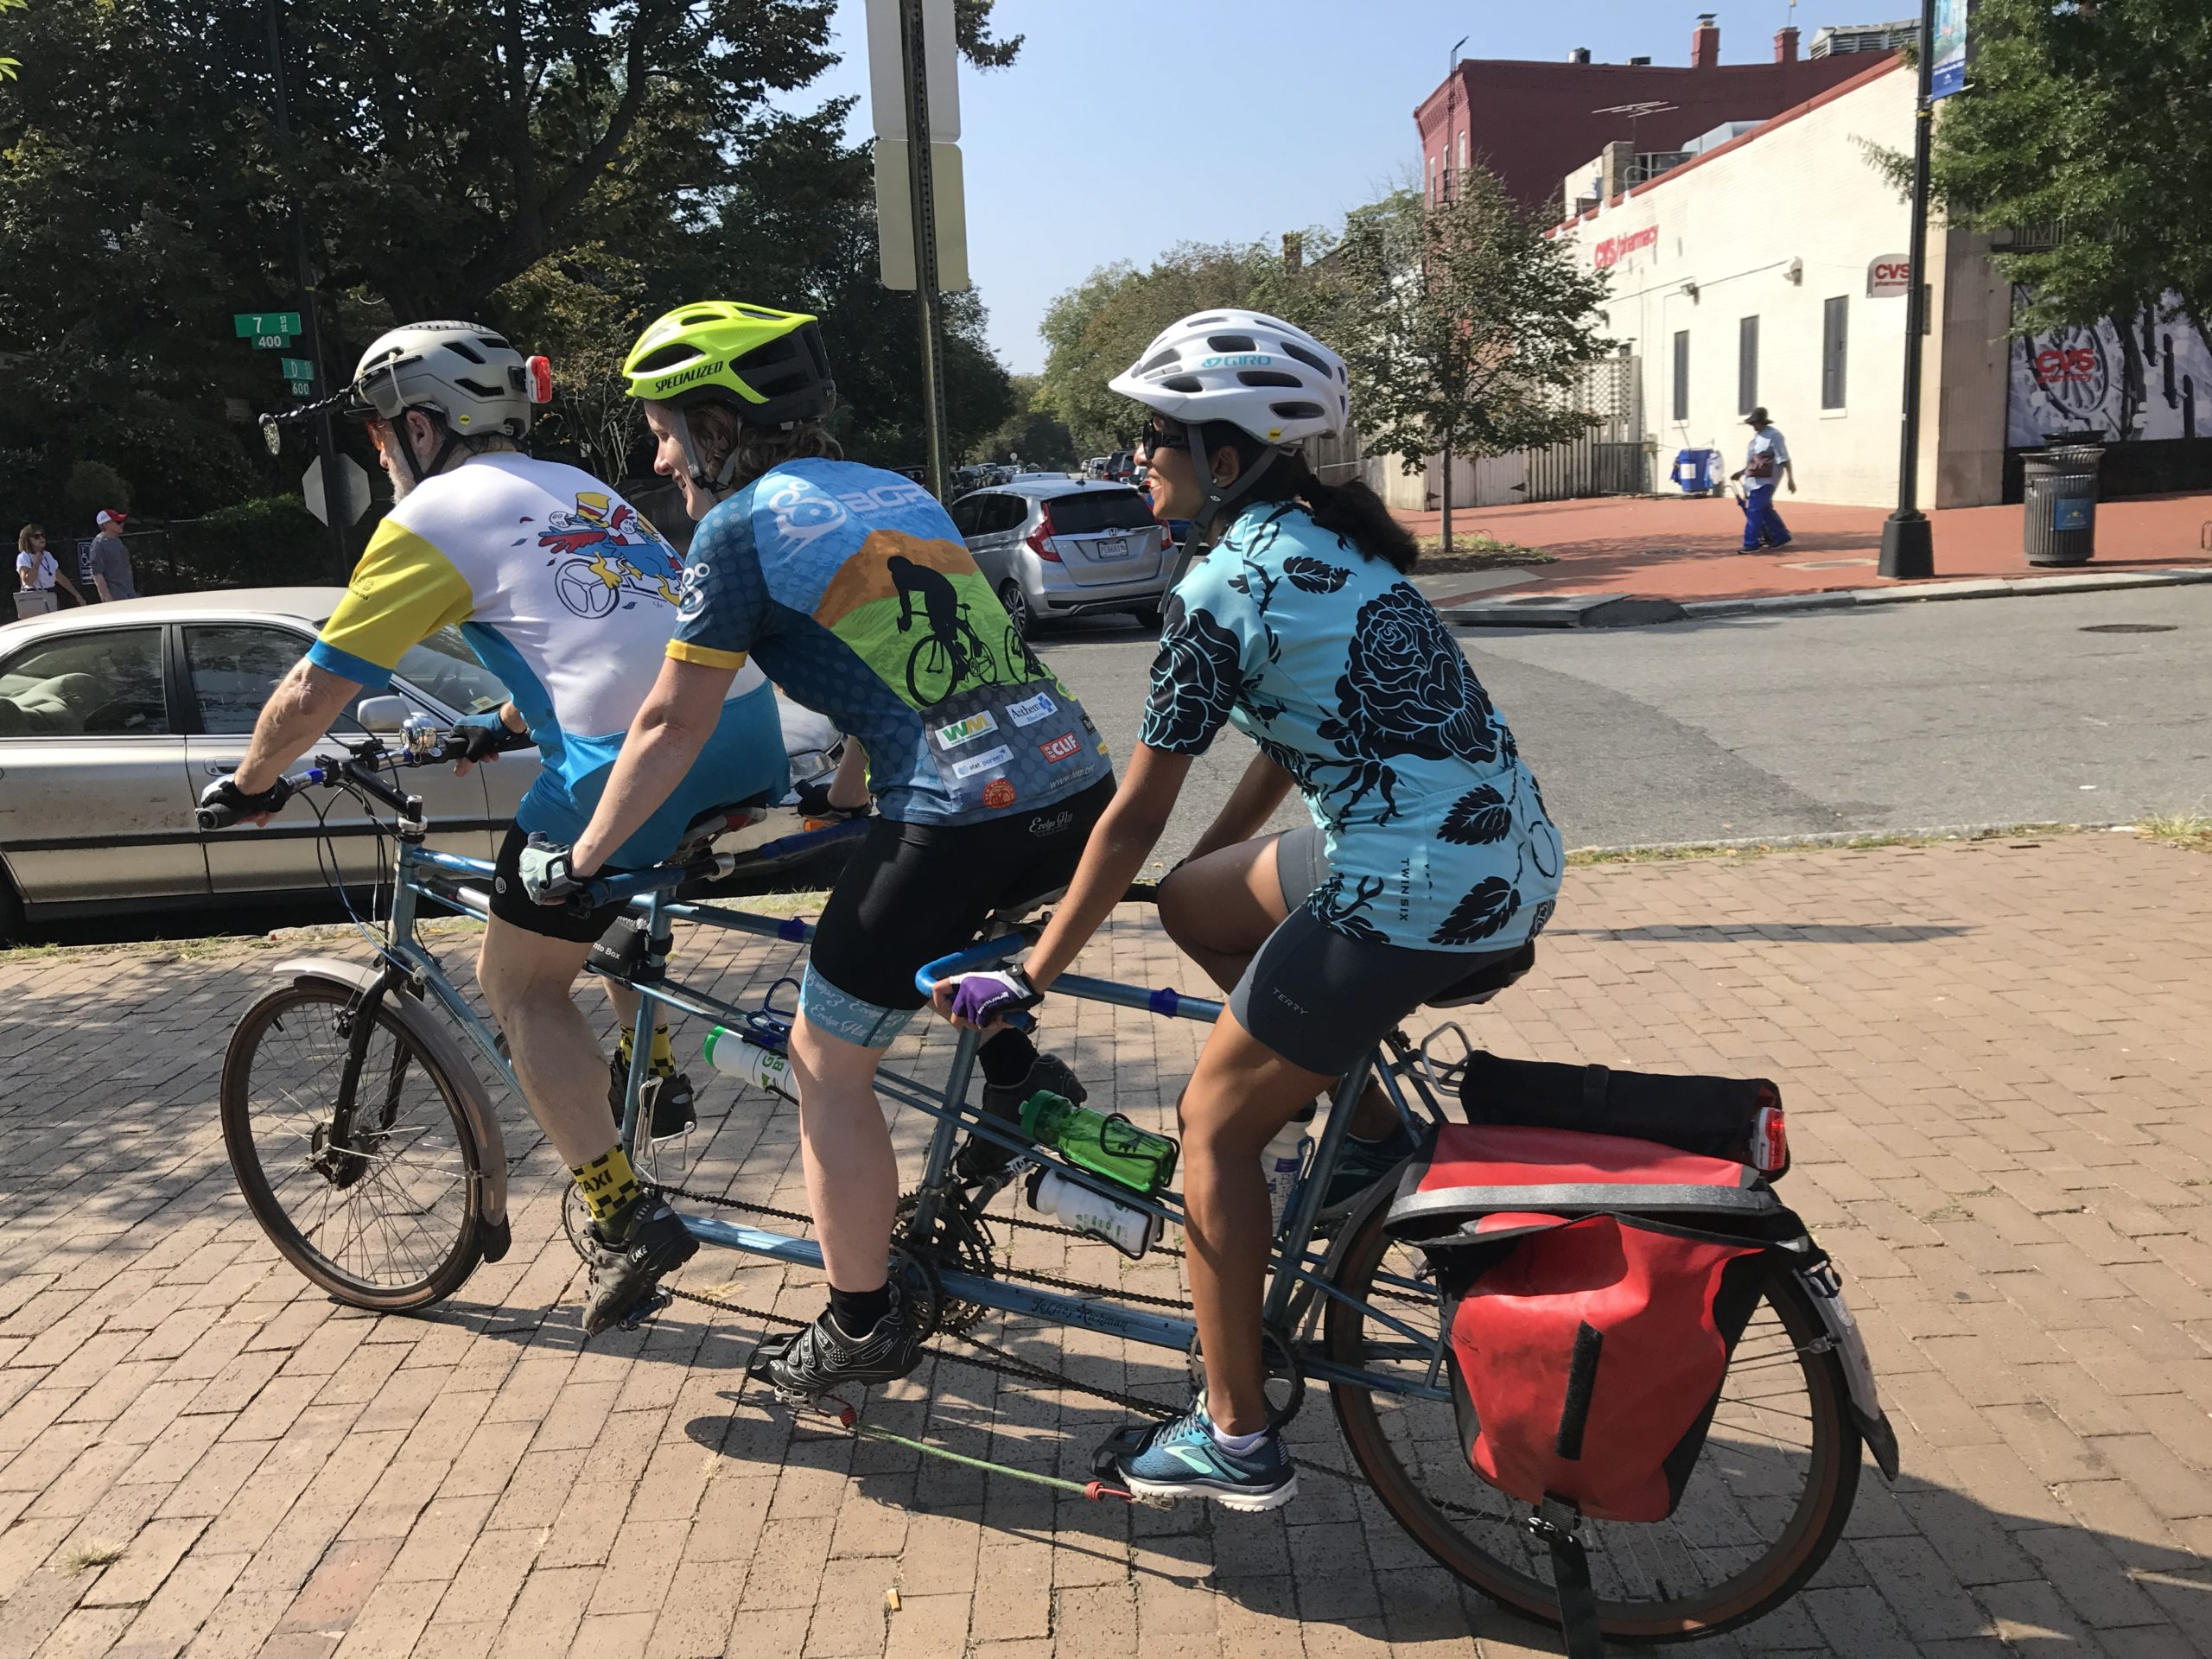 Three people are riding in a line on a three person bicycle away from the camera so you can only see their backs. The captain is wearing a white jersy, and the two people behind are in blue jerseys. Everyone is smiling, the sky is blue and they are about to go for a ride. Photo credit: MWABA